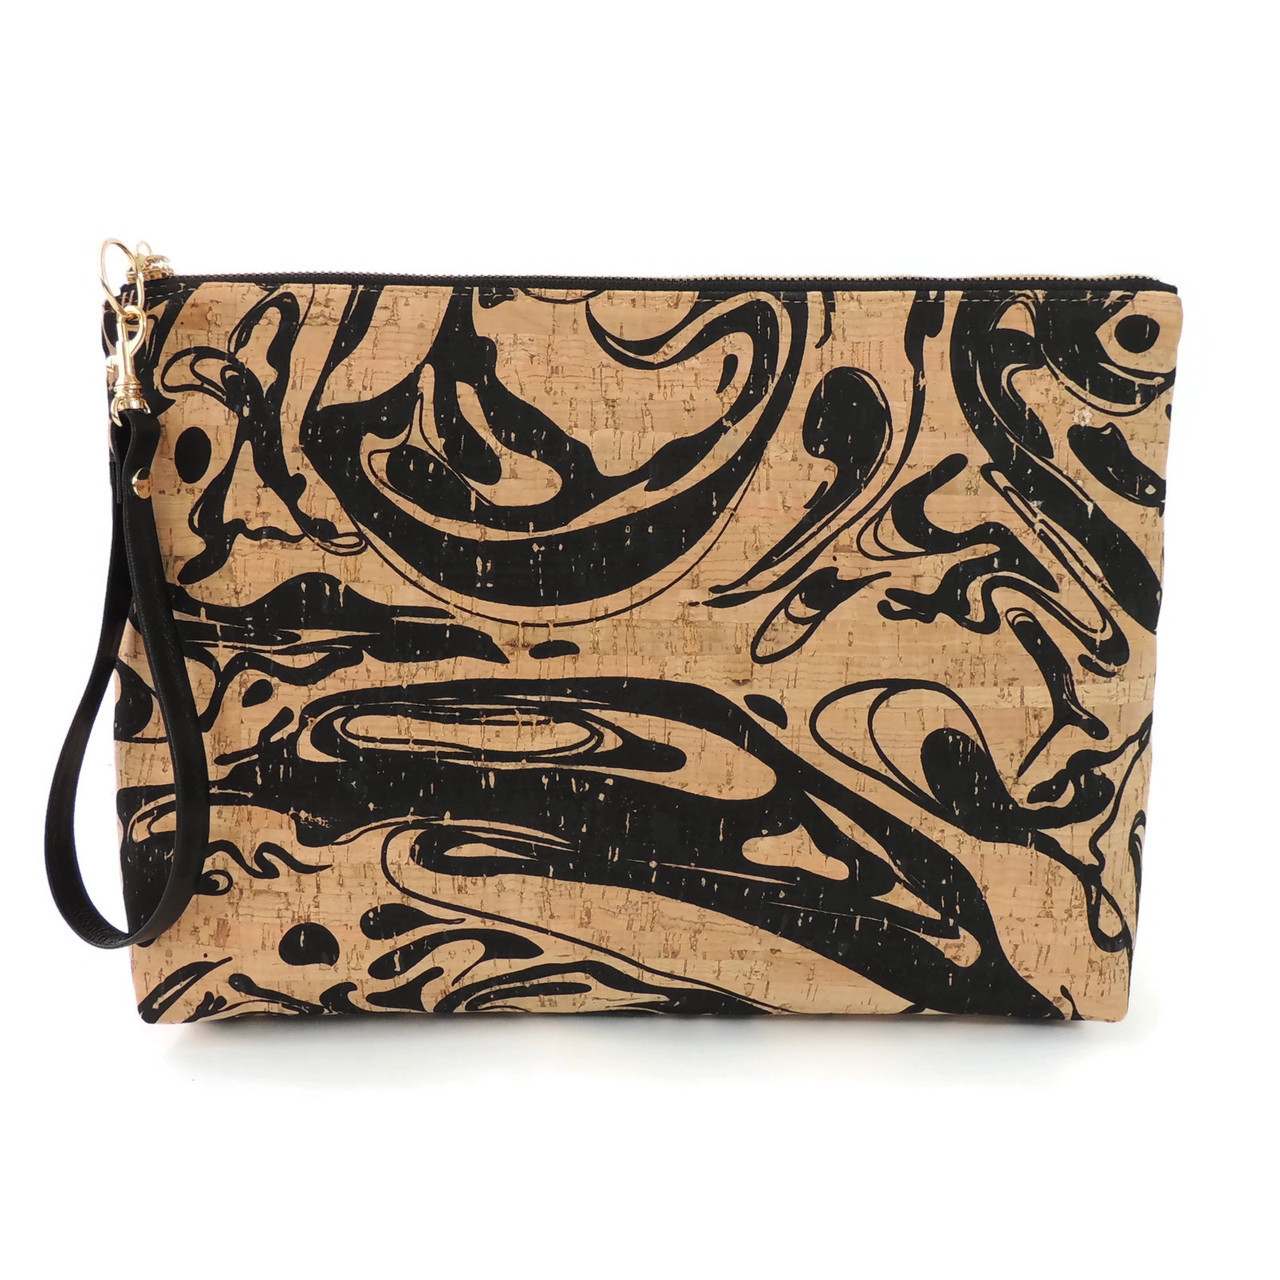 Carryall Clutch in Black Ink Cork